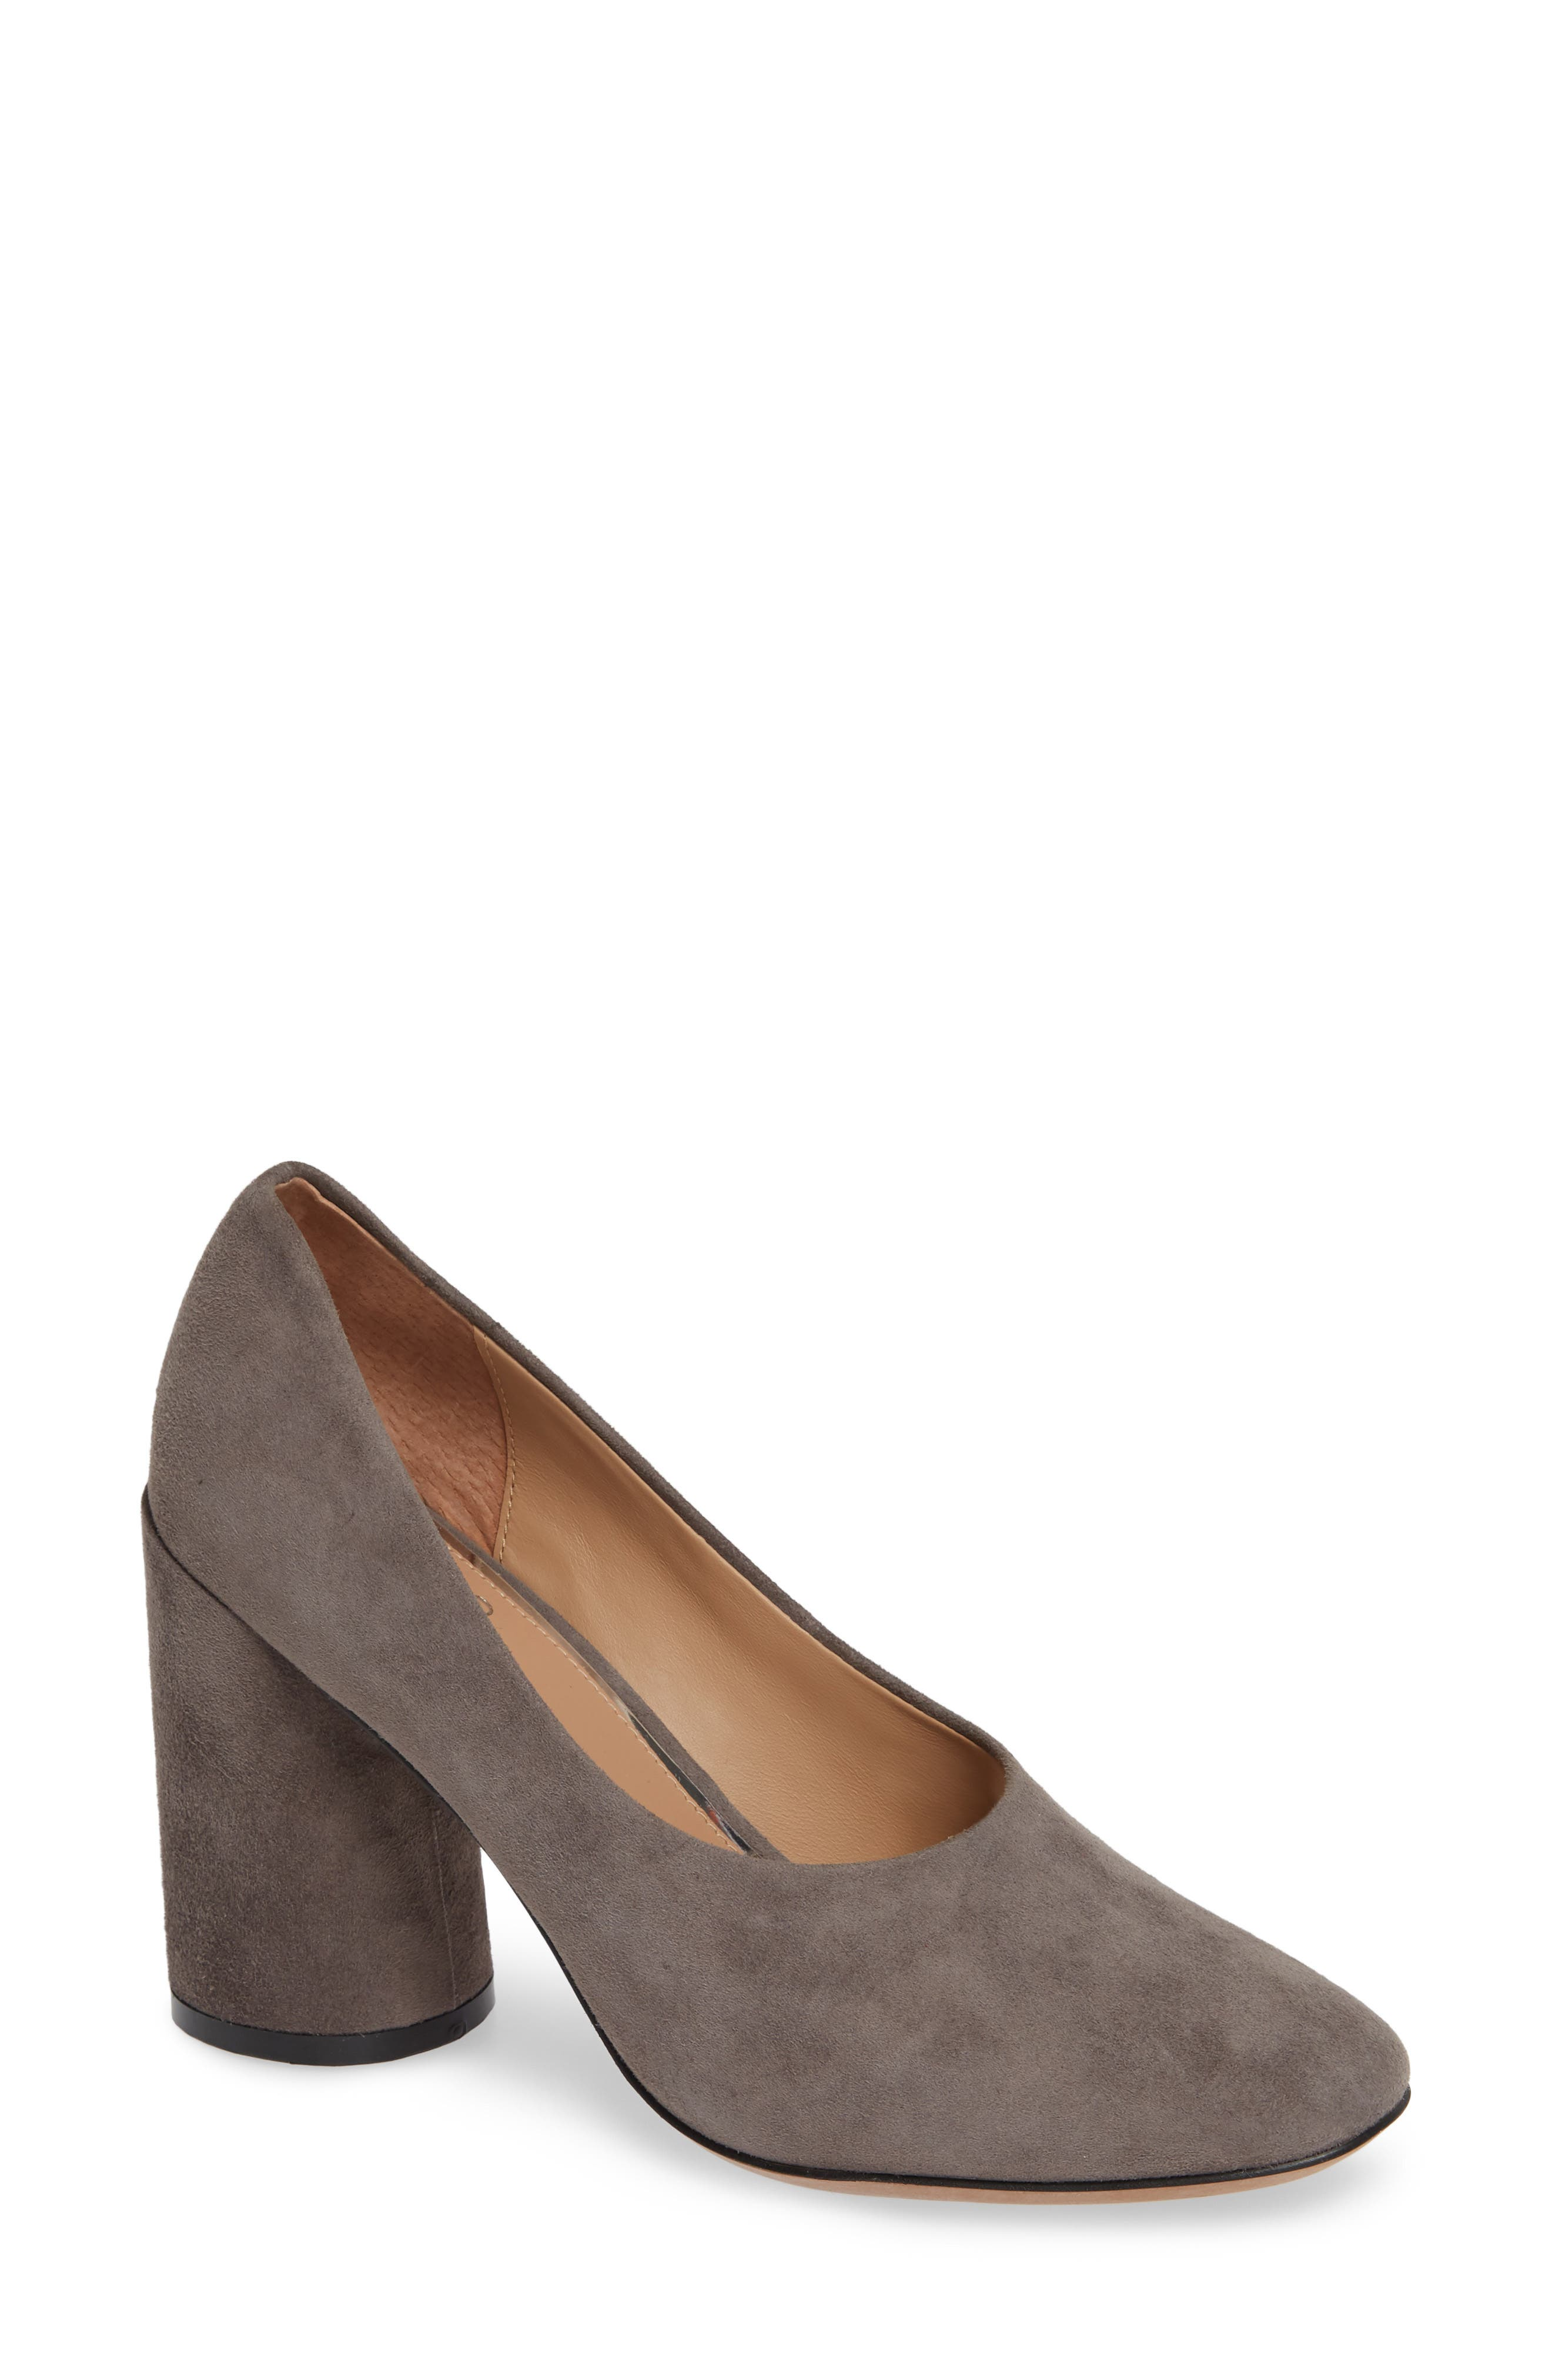 Linea Paolo Cherie Round Toe Pump, Grey